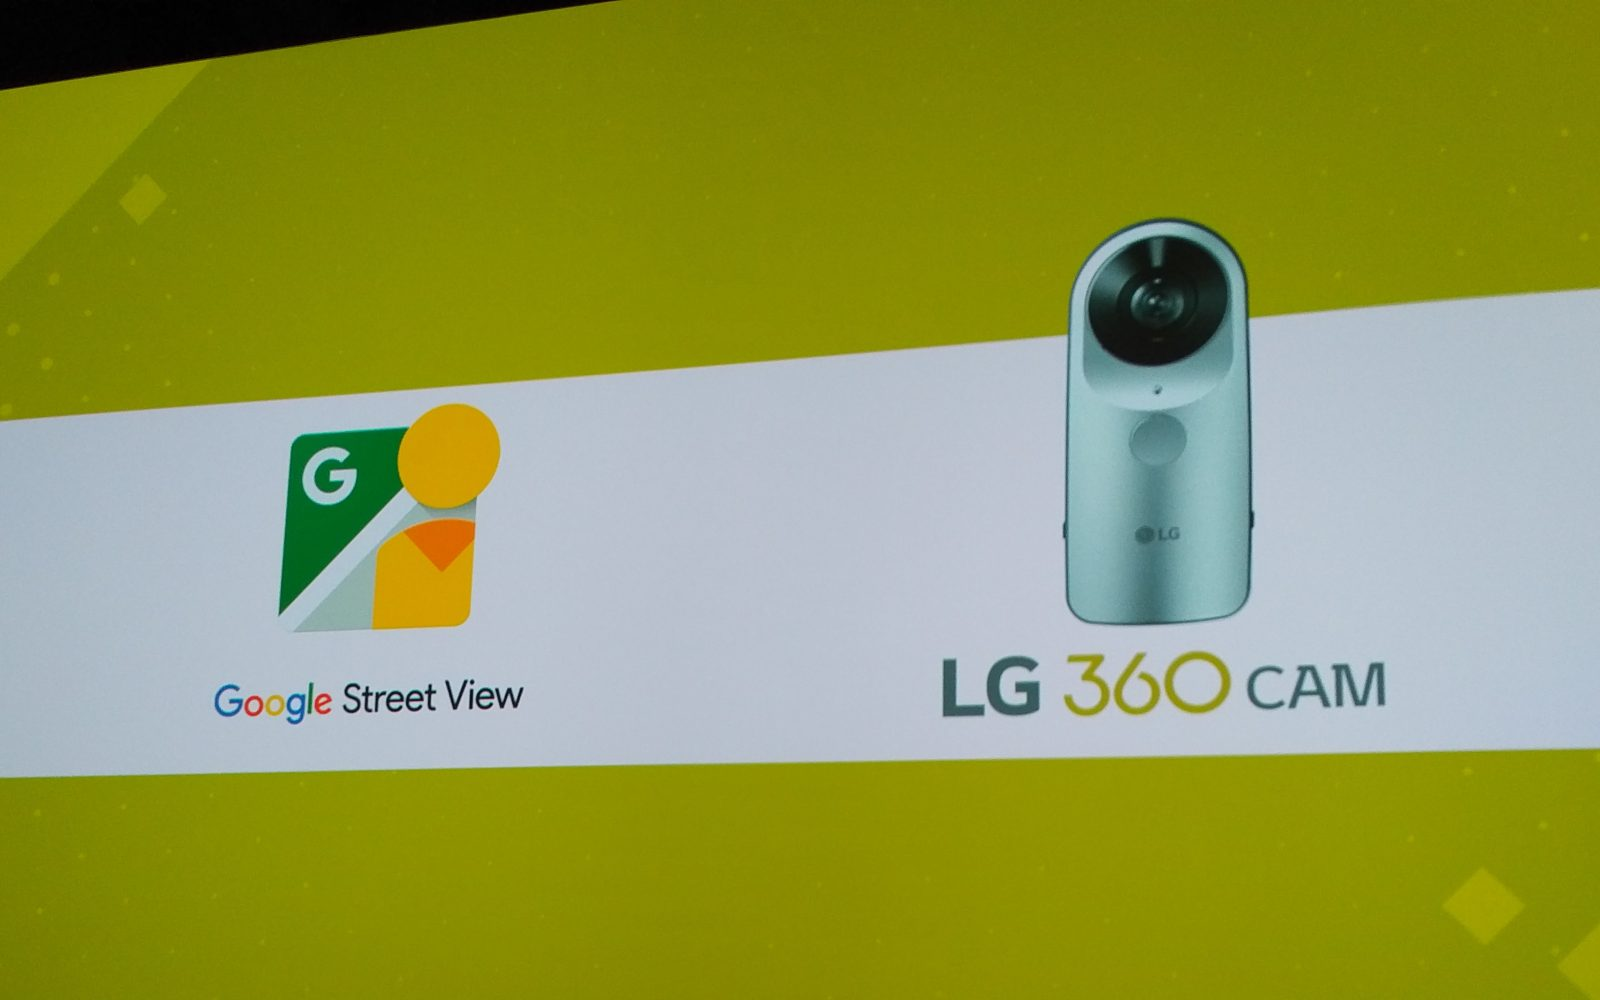 Google to store user-created Street View content in high quality for free